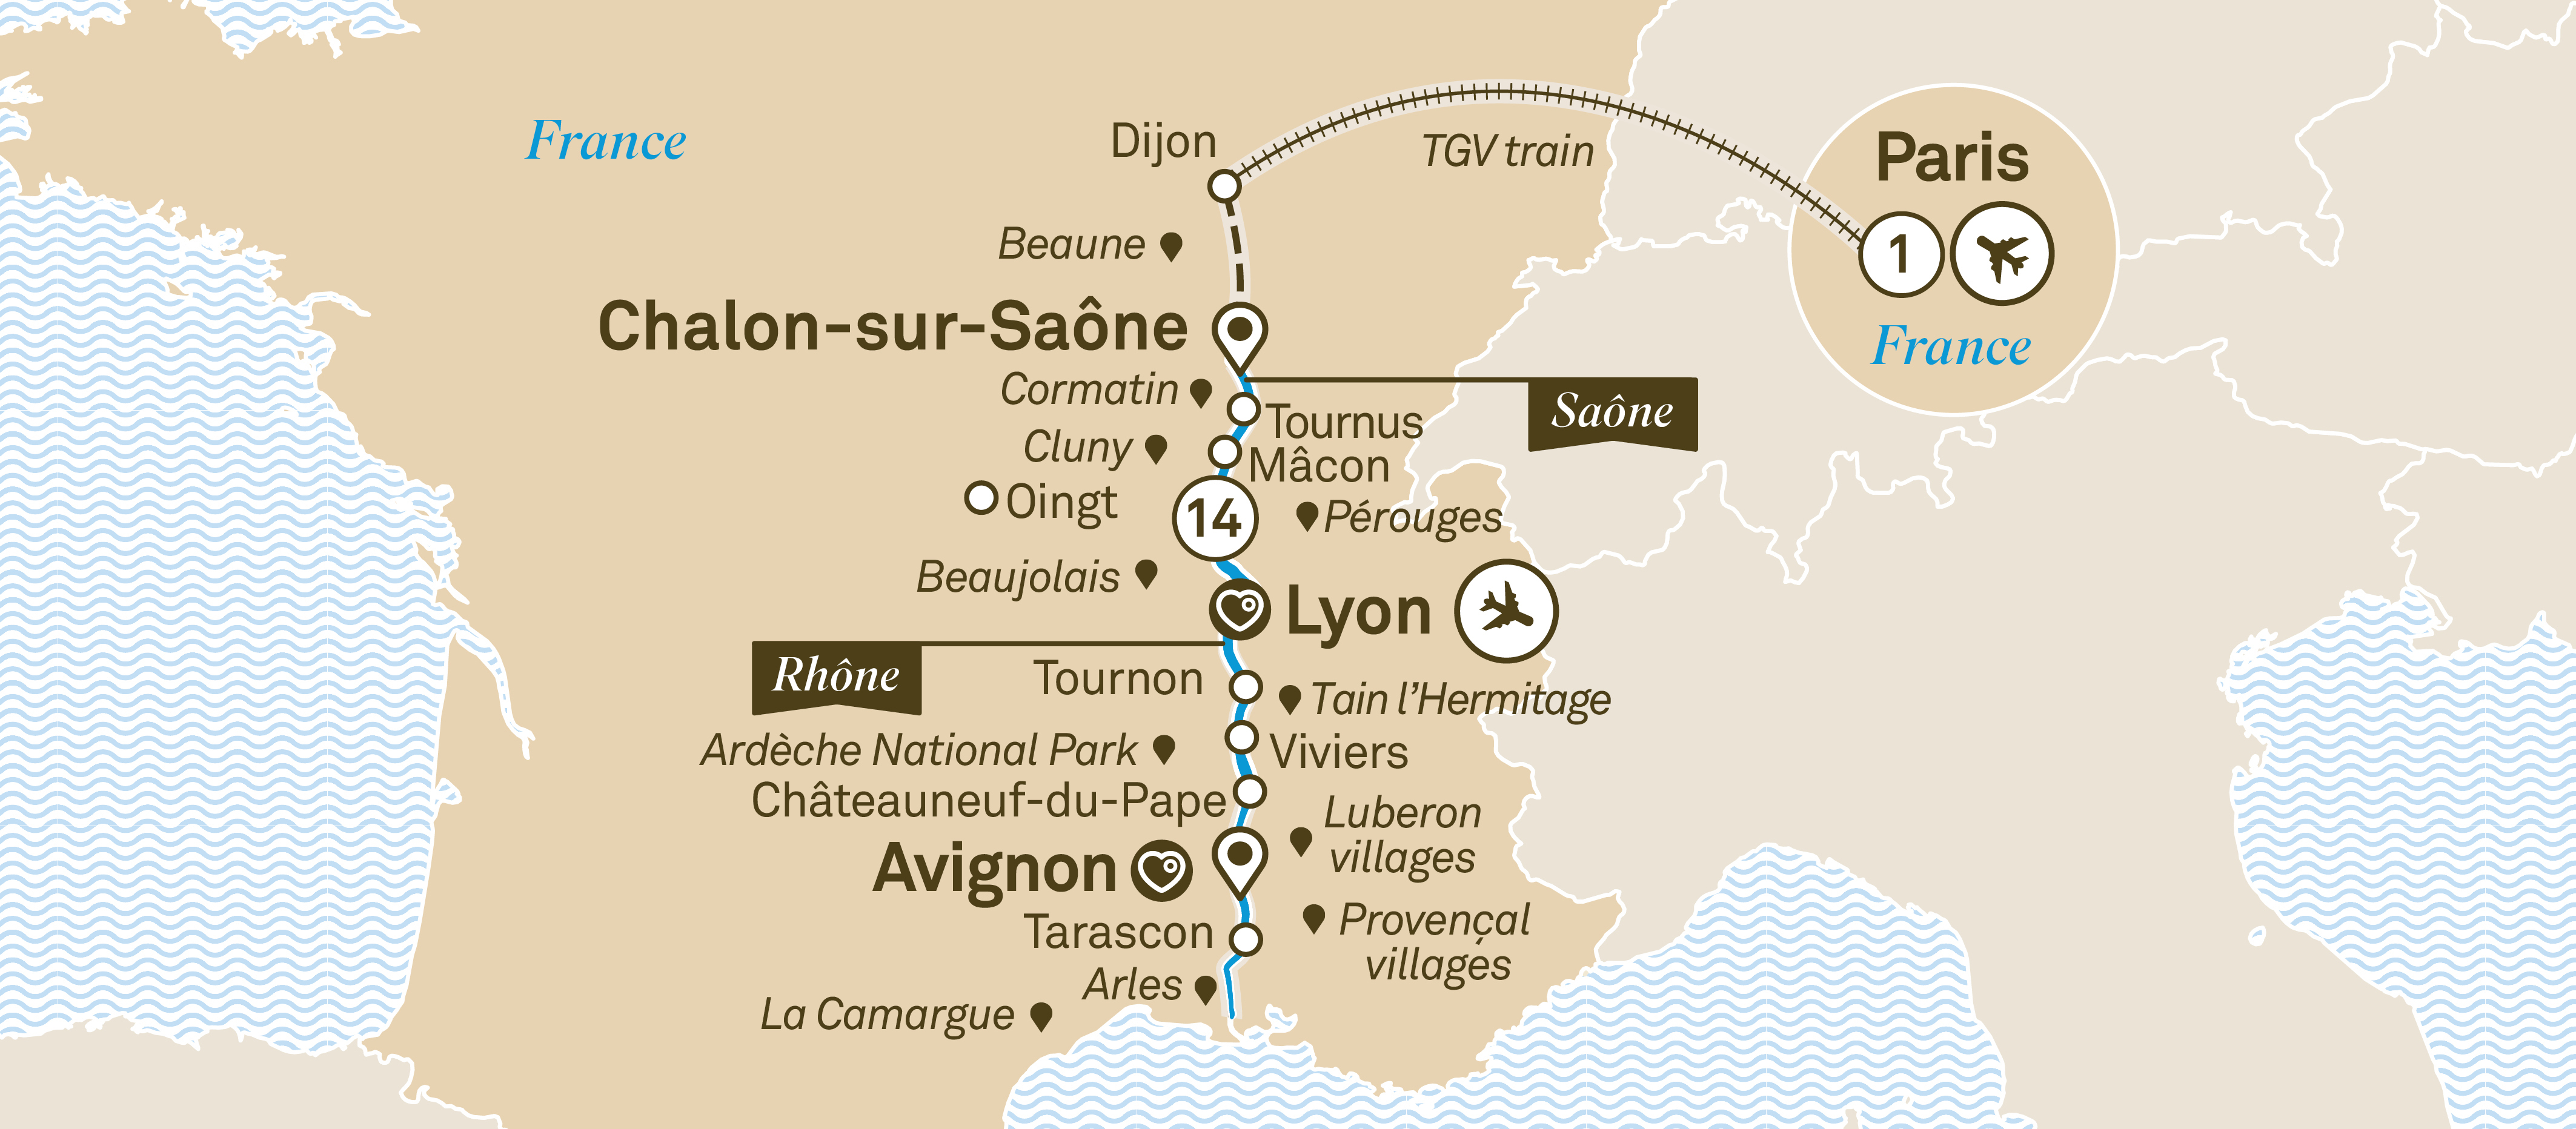 South Of France Cities Map.South Of France Indulgence